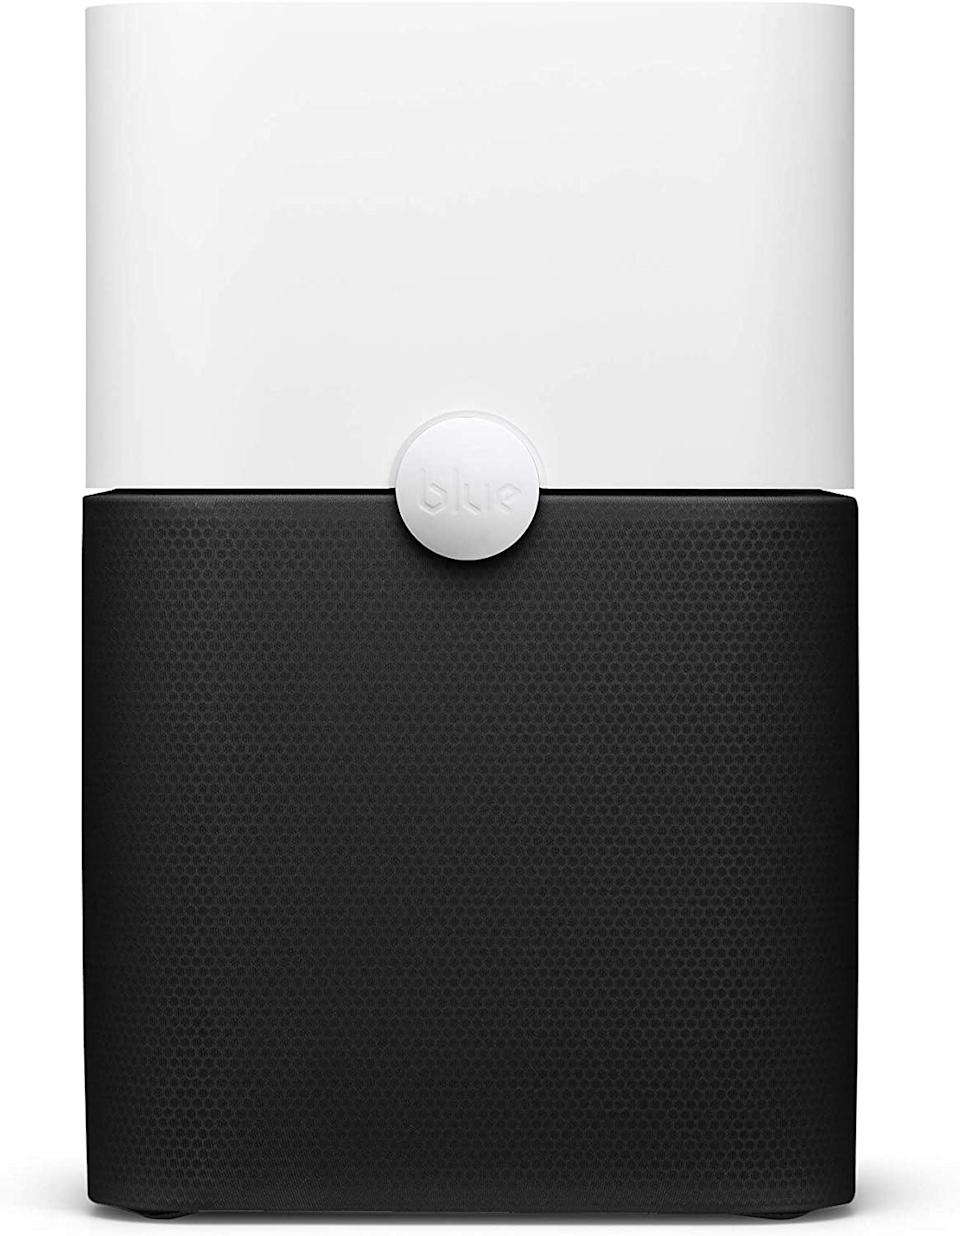 <p>If you don't have an air purifier, then it's about time to get the <span>Blueair Blue Pure 211+ Air Purifier</span> ($279, originally $300). The popular device will clean up to 99 percent of airborne pollutants and make your home's air feel fresher than ever. Plus, this large model is great for rooms up to 540 square feet.</p>